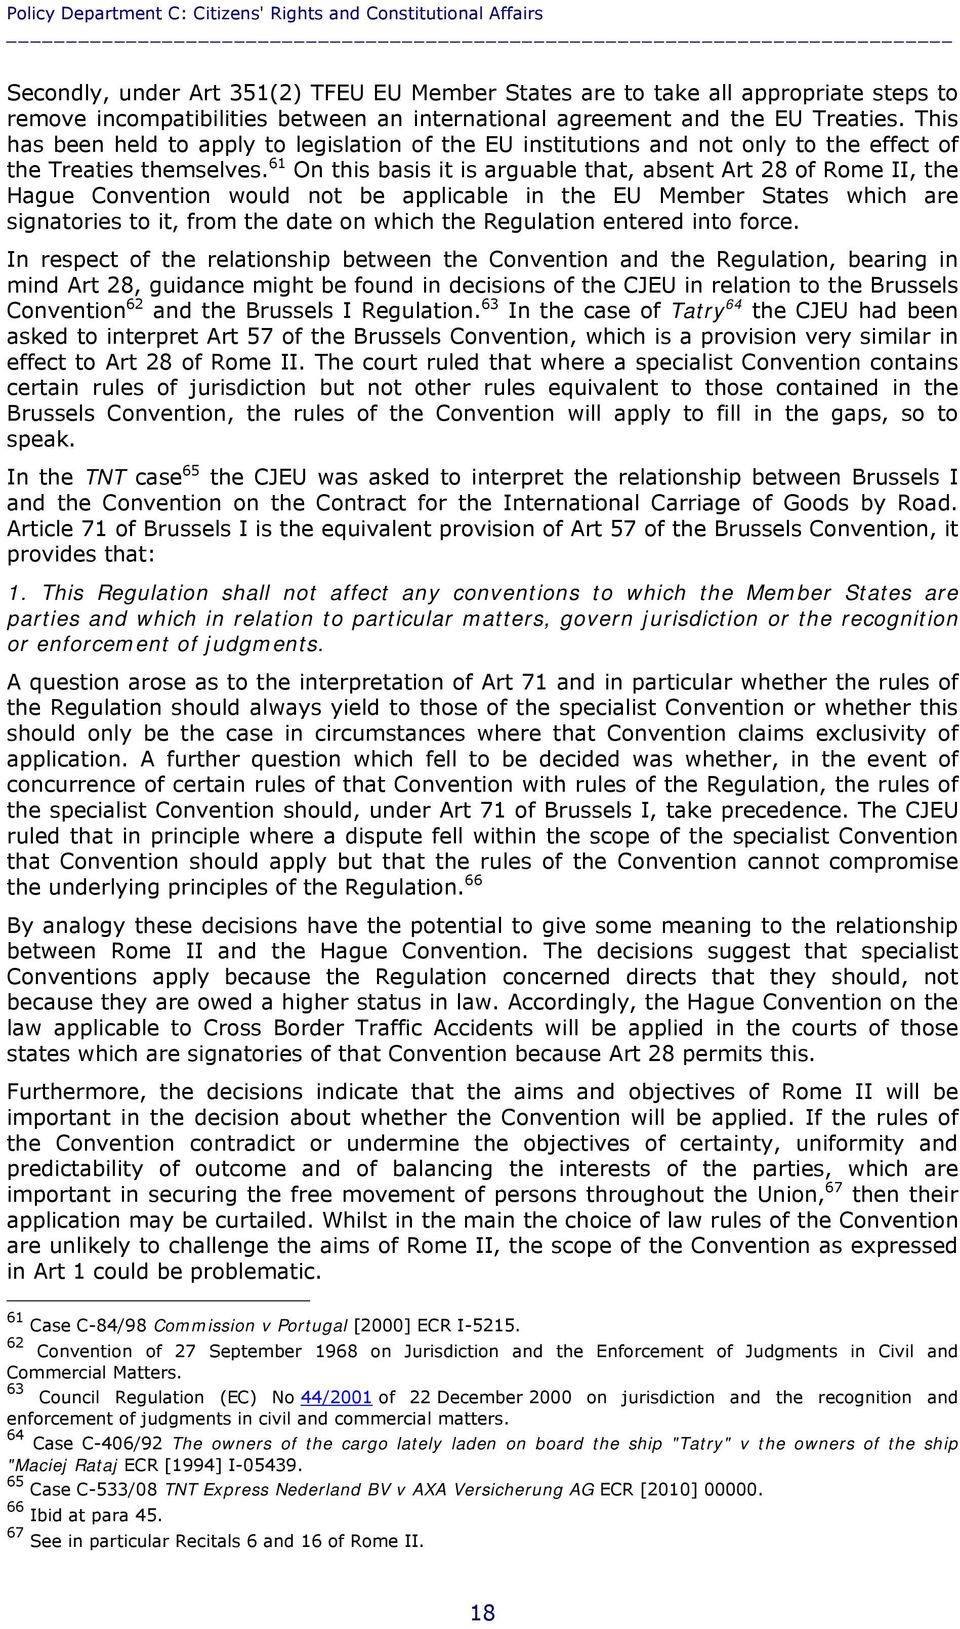 61 On this basis it is arguable that, absent Art 28 of Rome II, the Hague Convention would not be applicable in the EU Member States which are signatories to it, from the date on which the Regulation